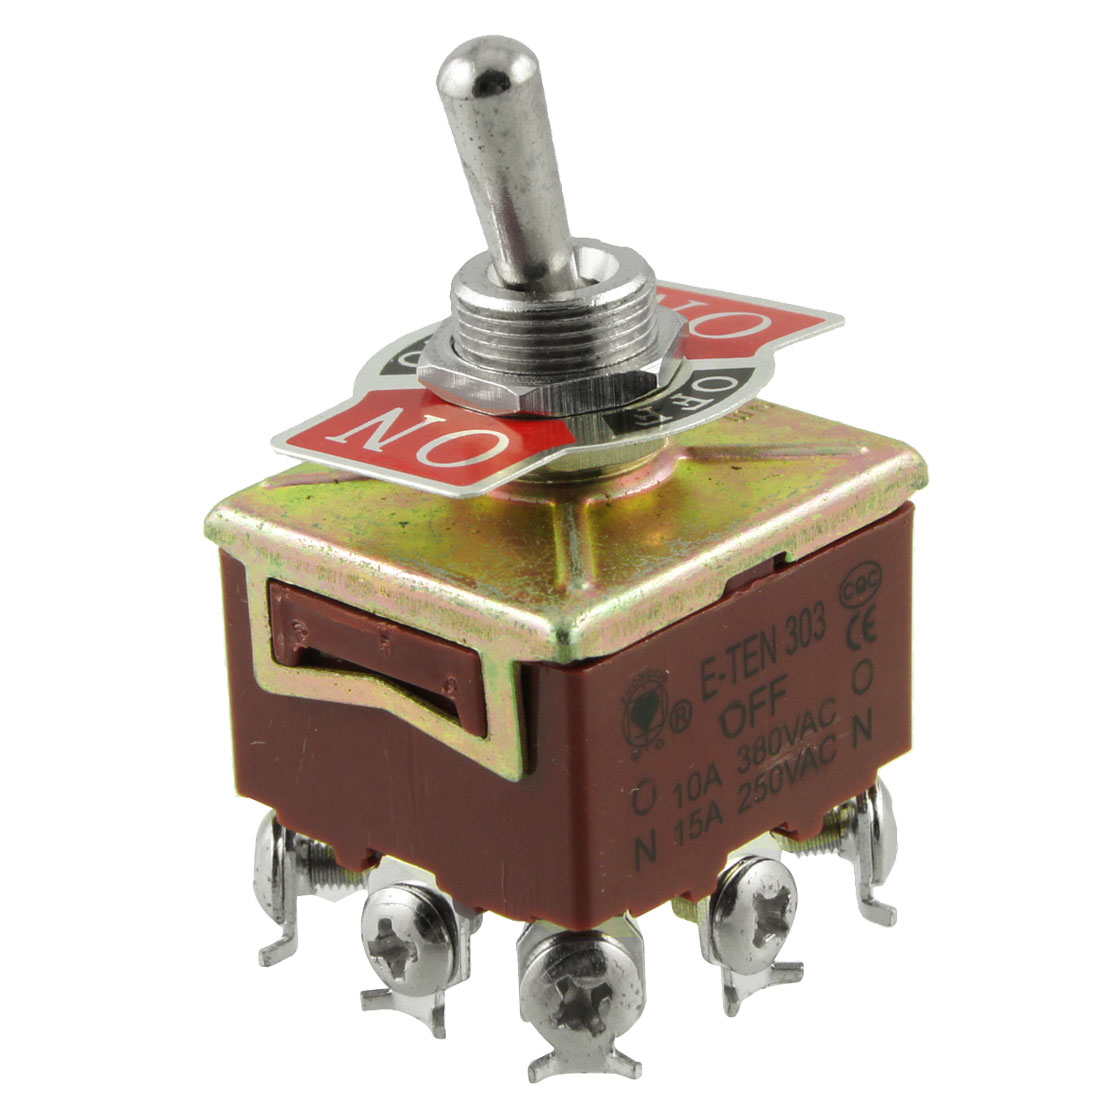 3PDT On/Off/On 3 Postion 9 Screw Terminals Toggle Switch AC 250V 15A